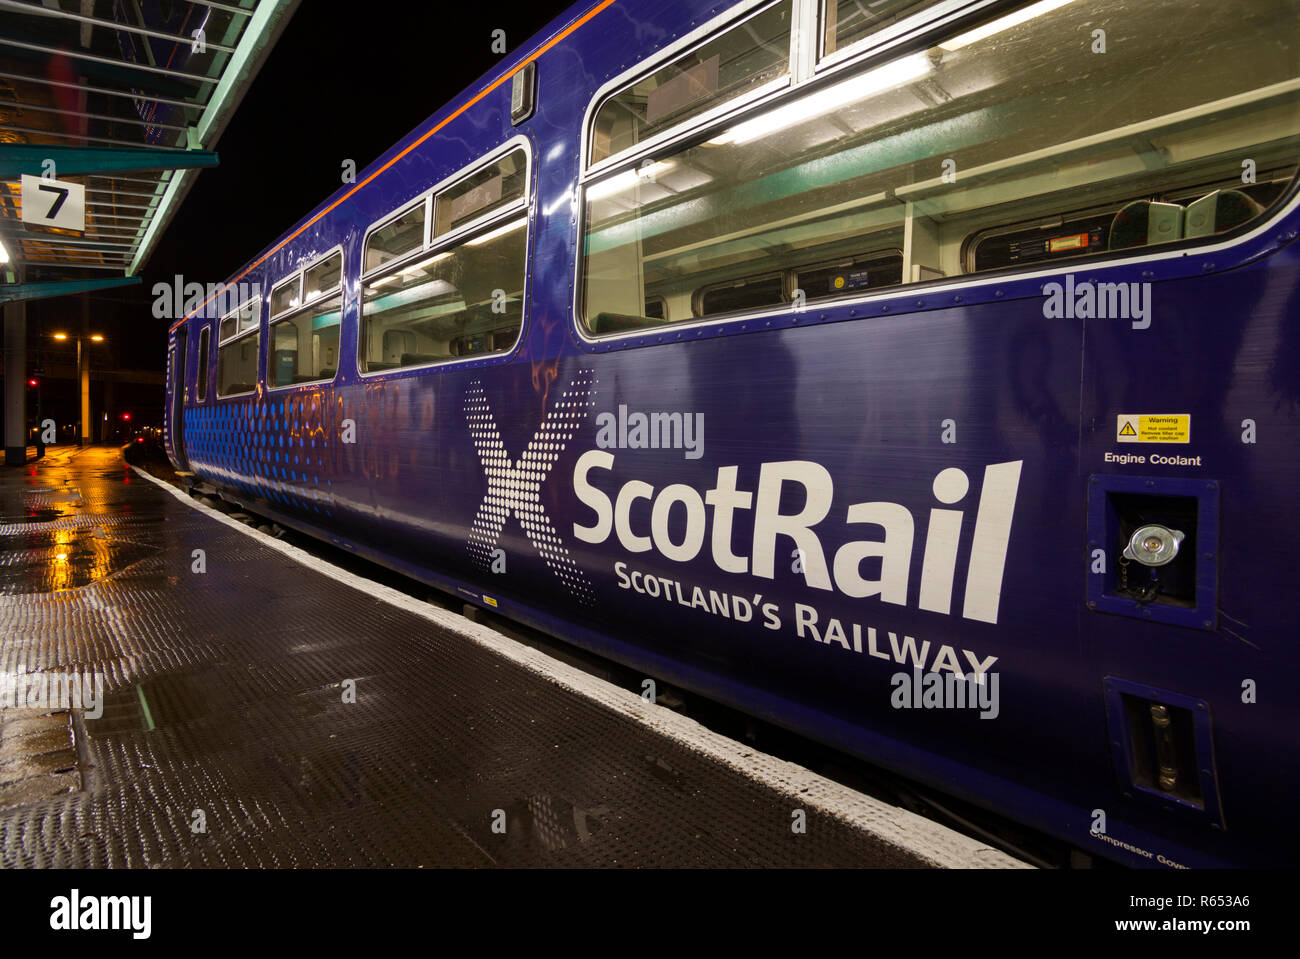 Scotrail logo on the side of a class 156 sprinter train - Stock Image